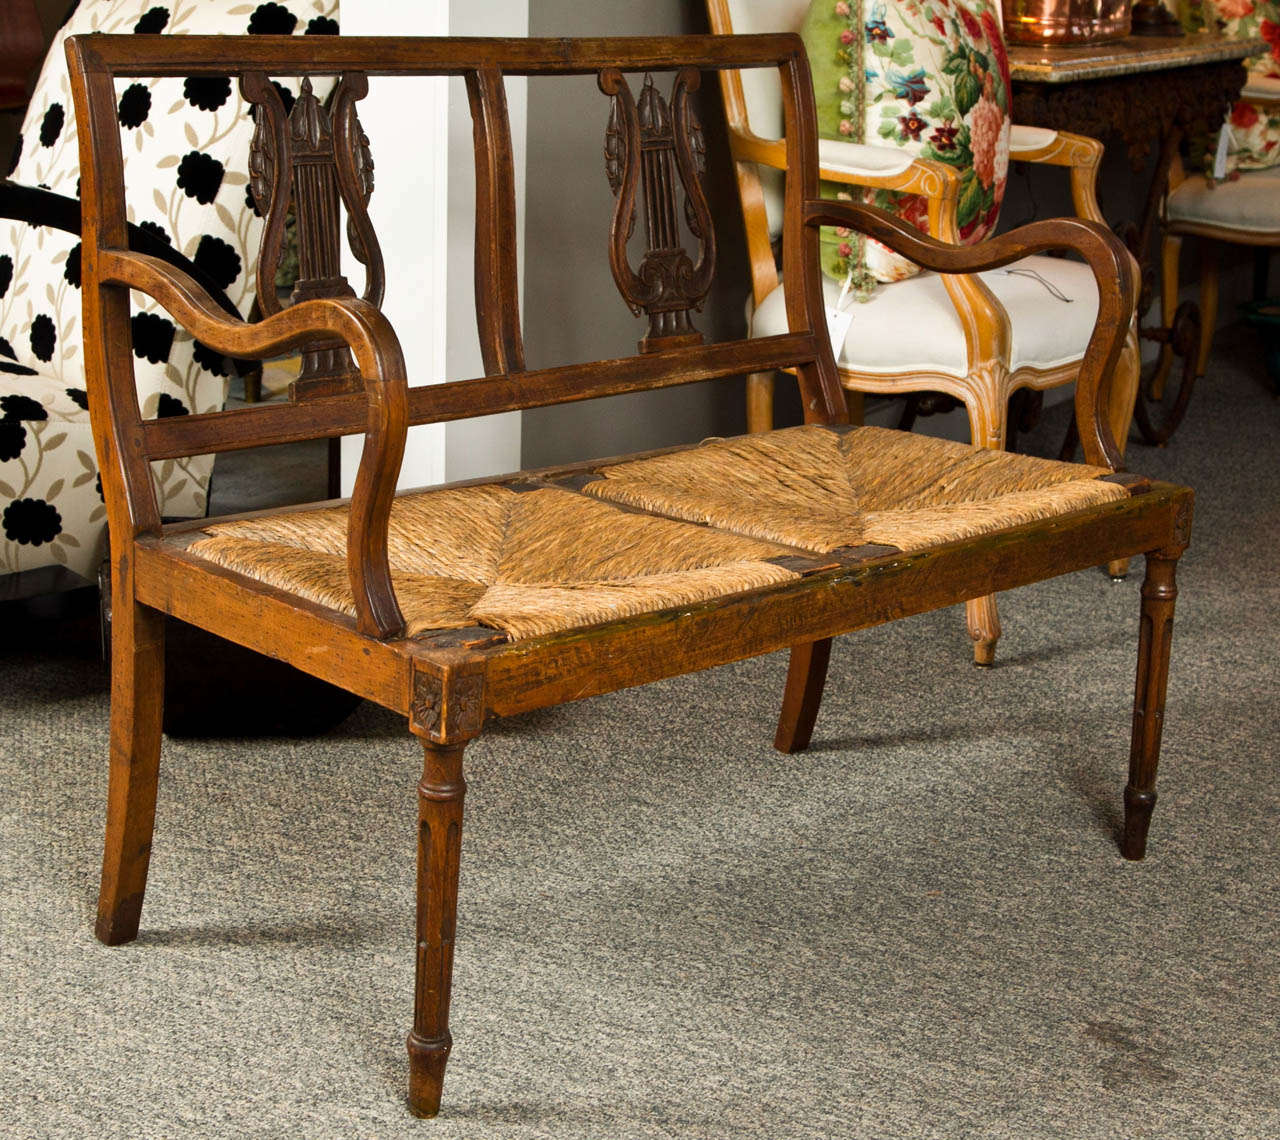 Carved Walnut Bench, Late 19th Century, Italy For Sale 1